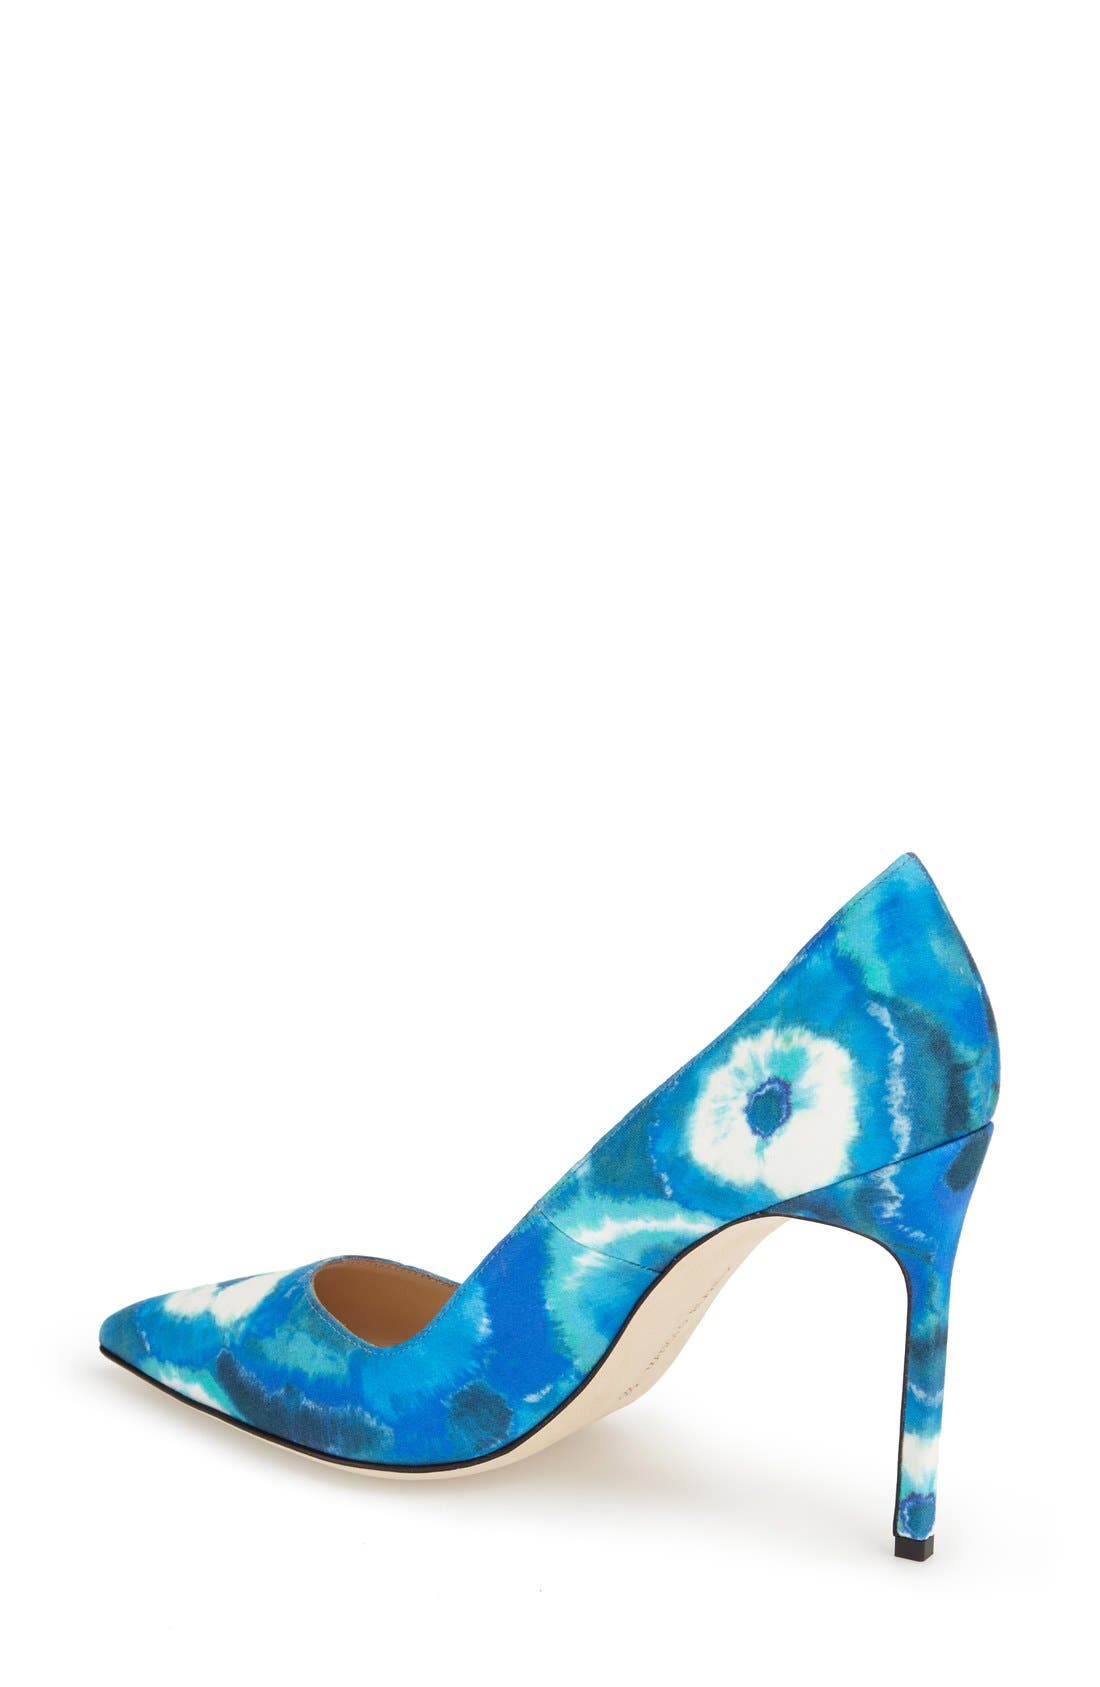 BB Pointy Toe Pump,                             Alternate thumbnail 23, color,